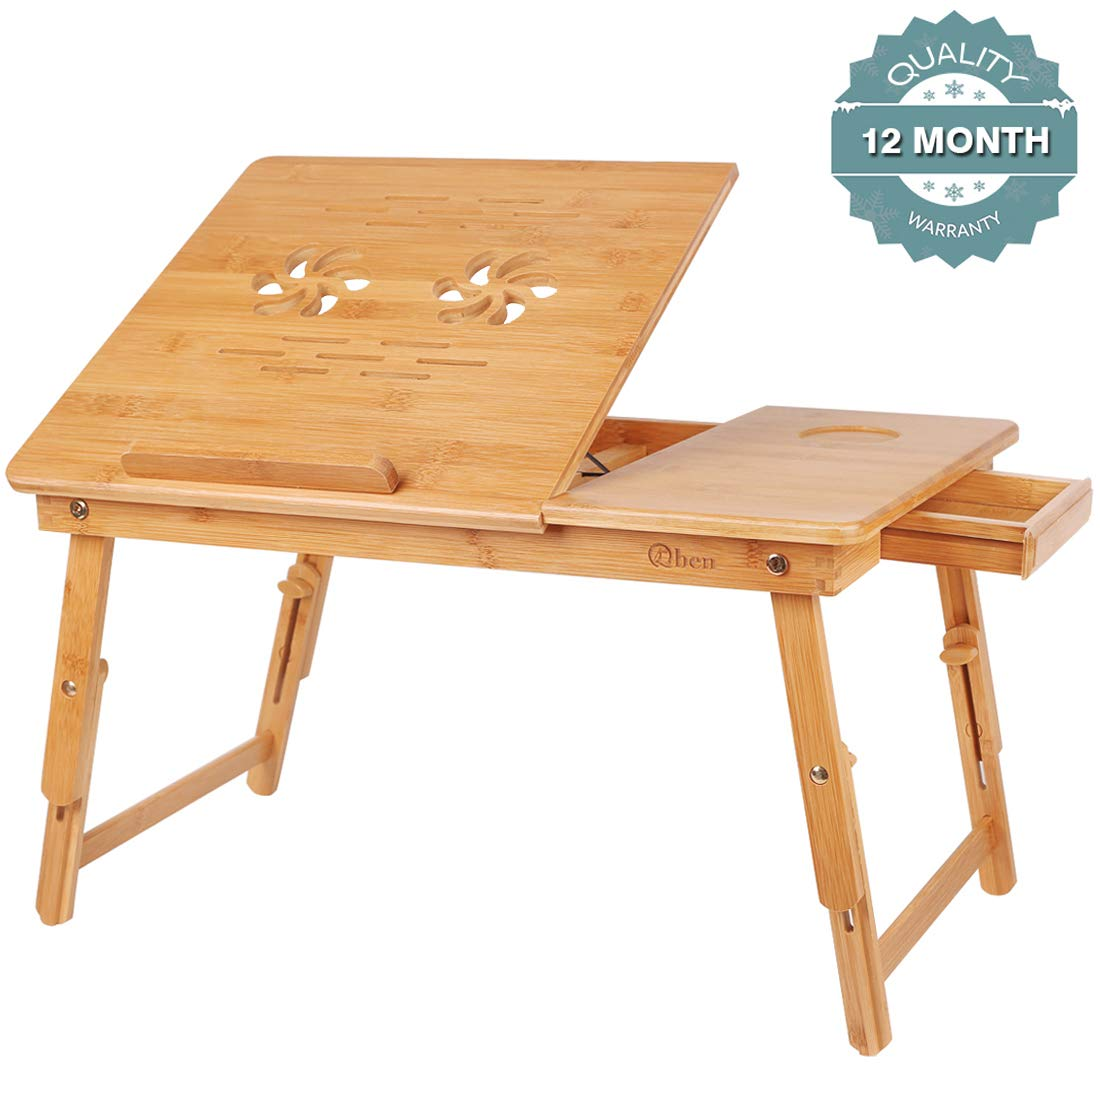 Bamboo Laptop Desk Tray,Breakfast Serving Bed Trays, Adjustable Foldable with Flip Top and Legs, Computer Stand with Drawer-by QL-ben